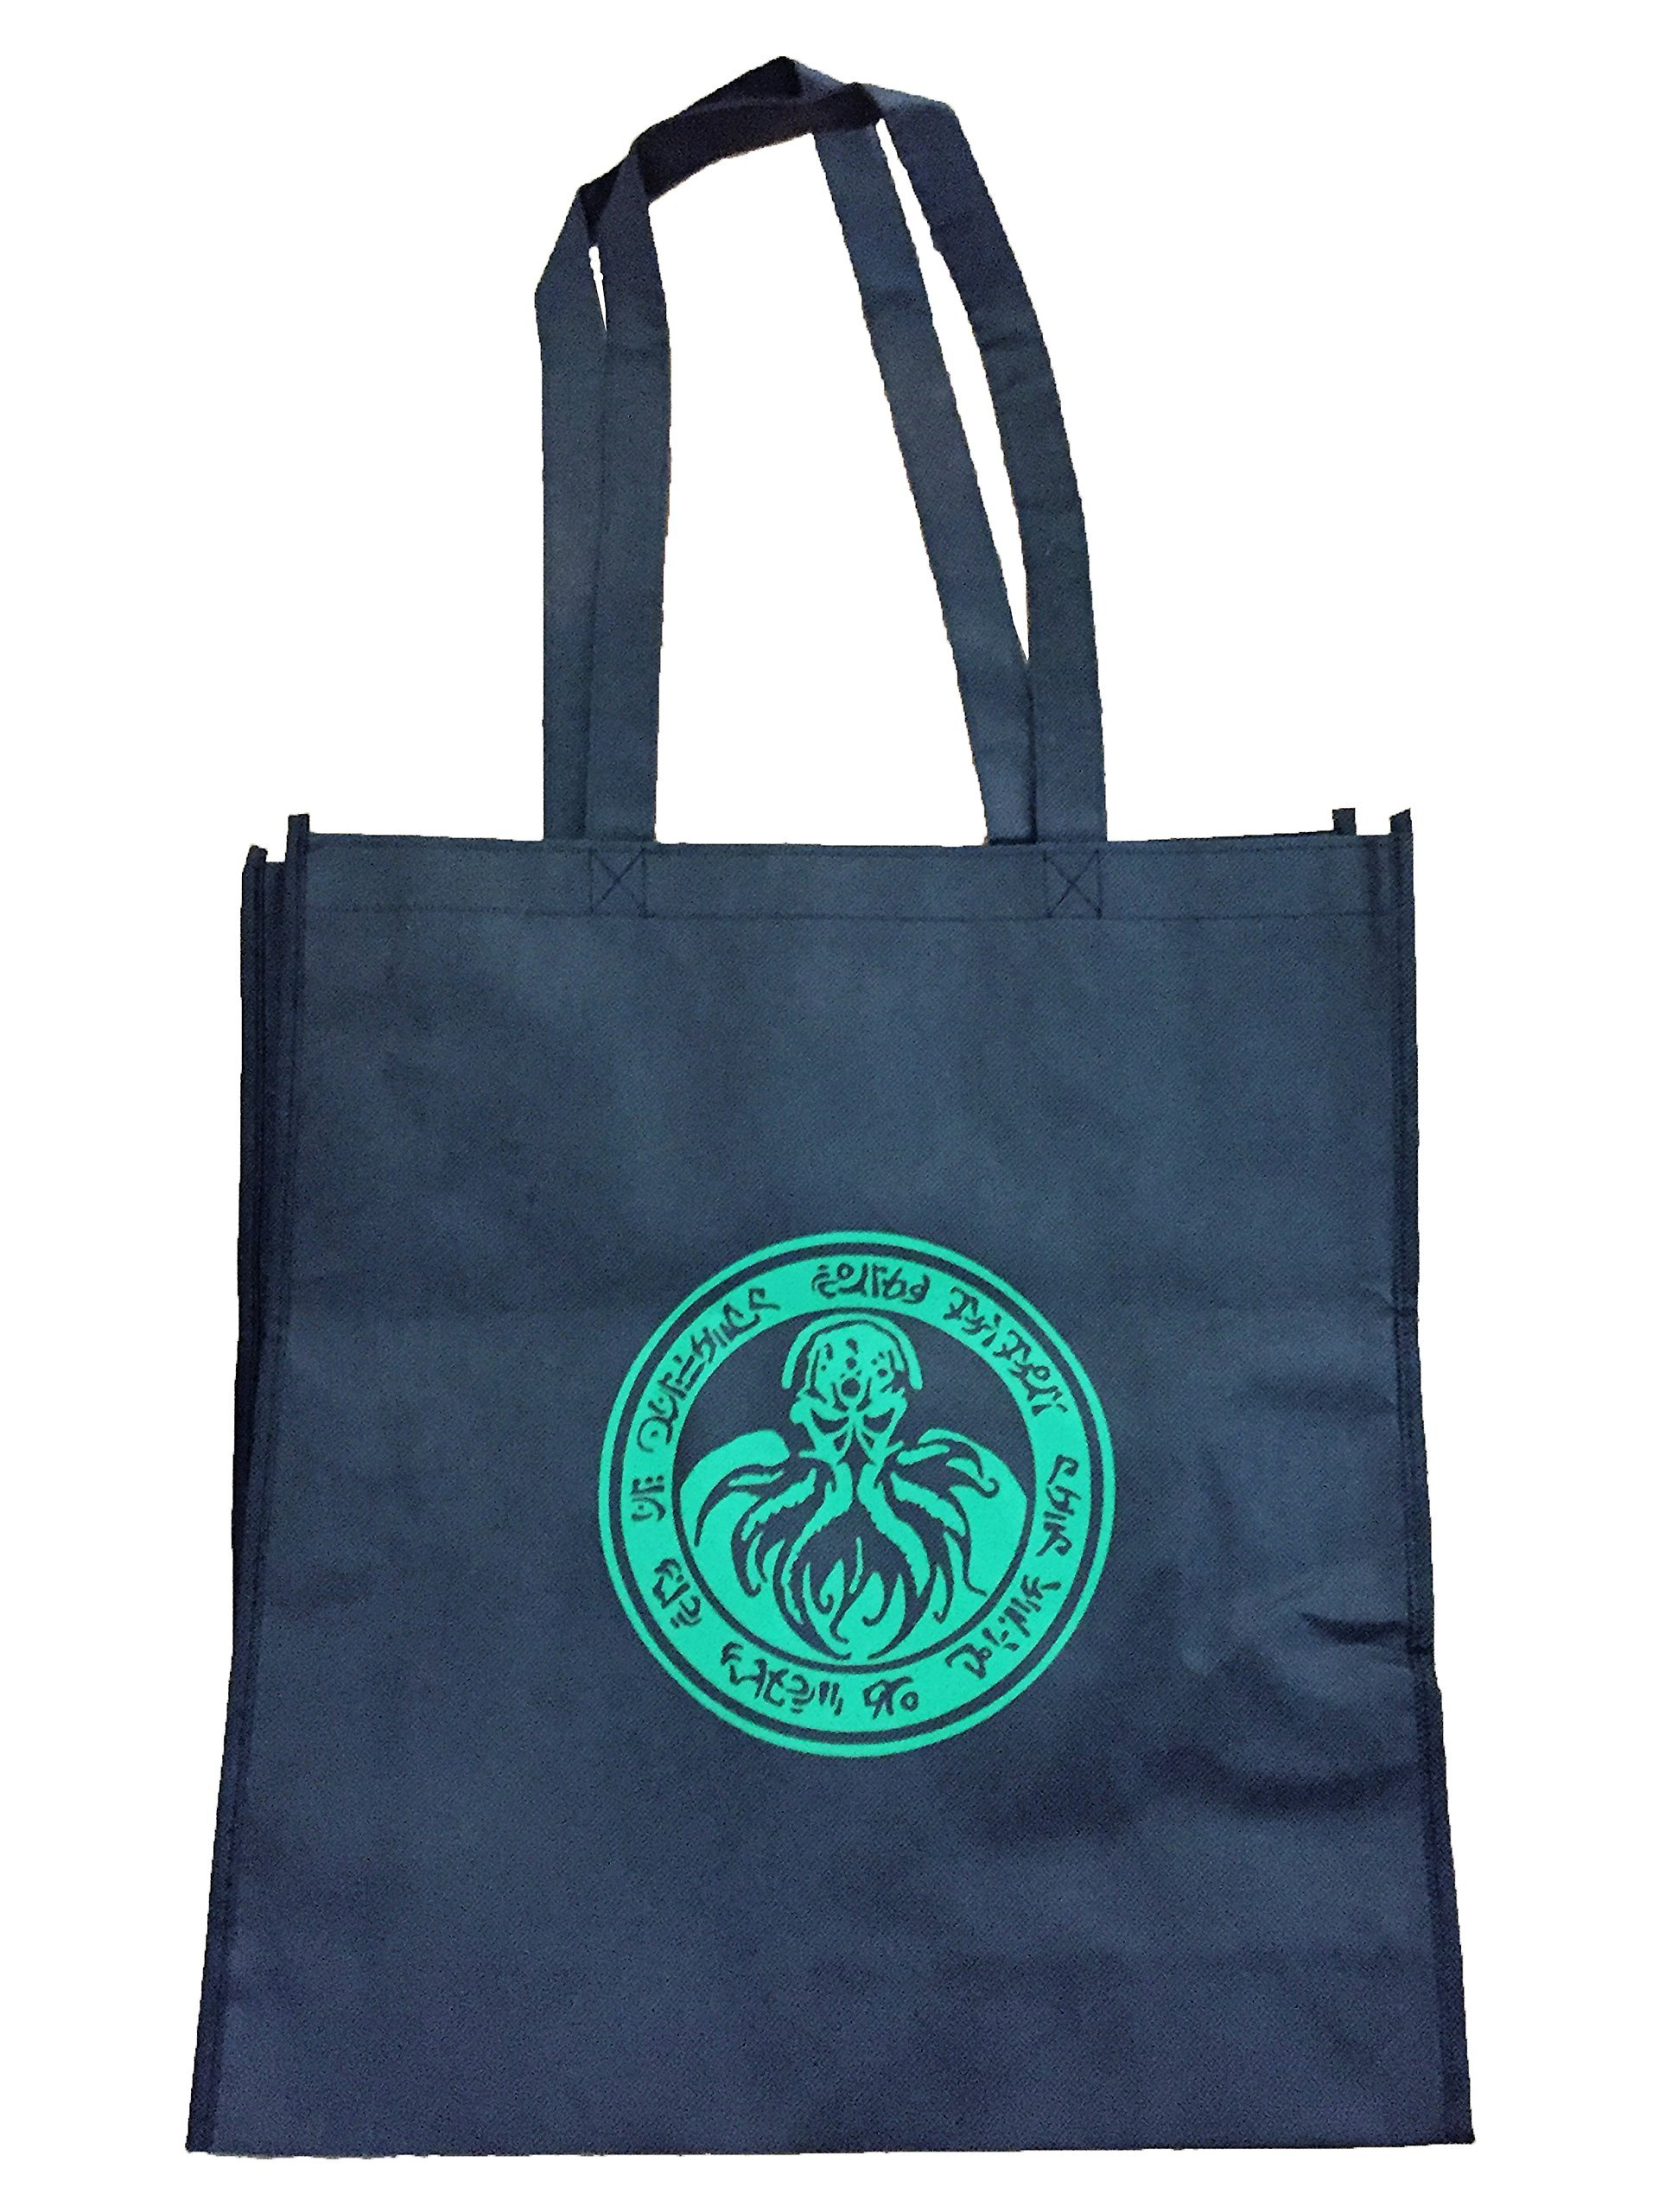 Lovecraft Cthulhu large black tote reusable Board Game bag or shopping bag with gusset. - handmade-bags